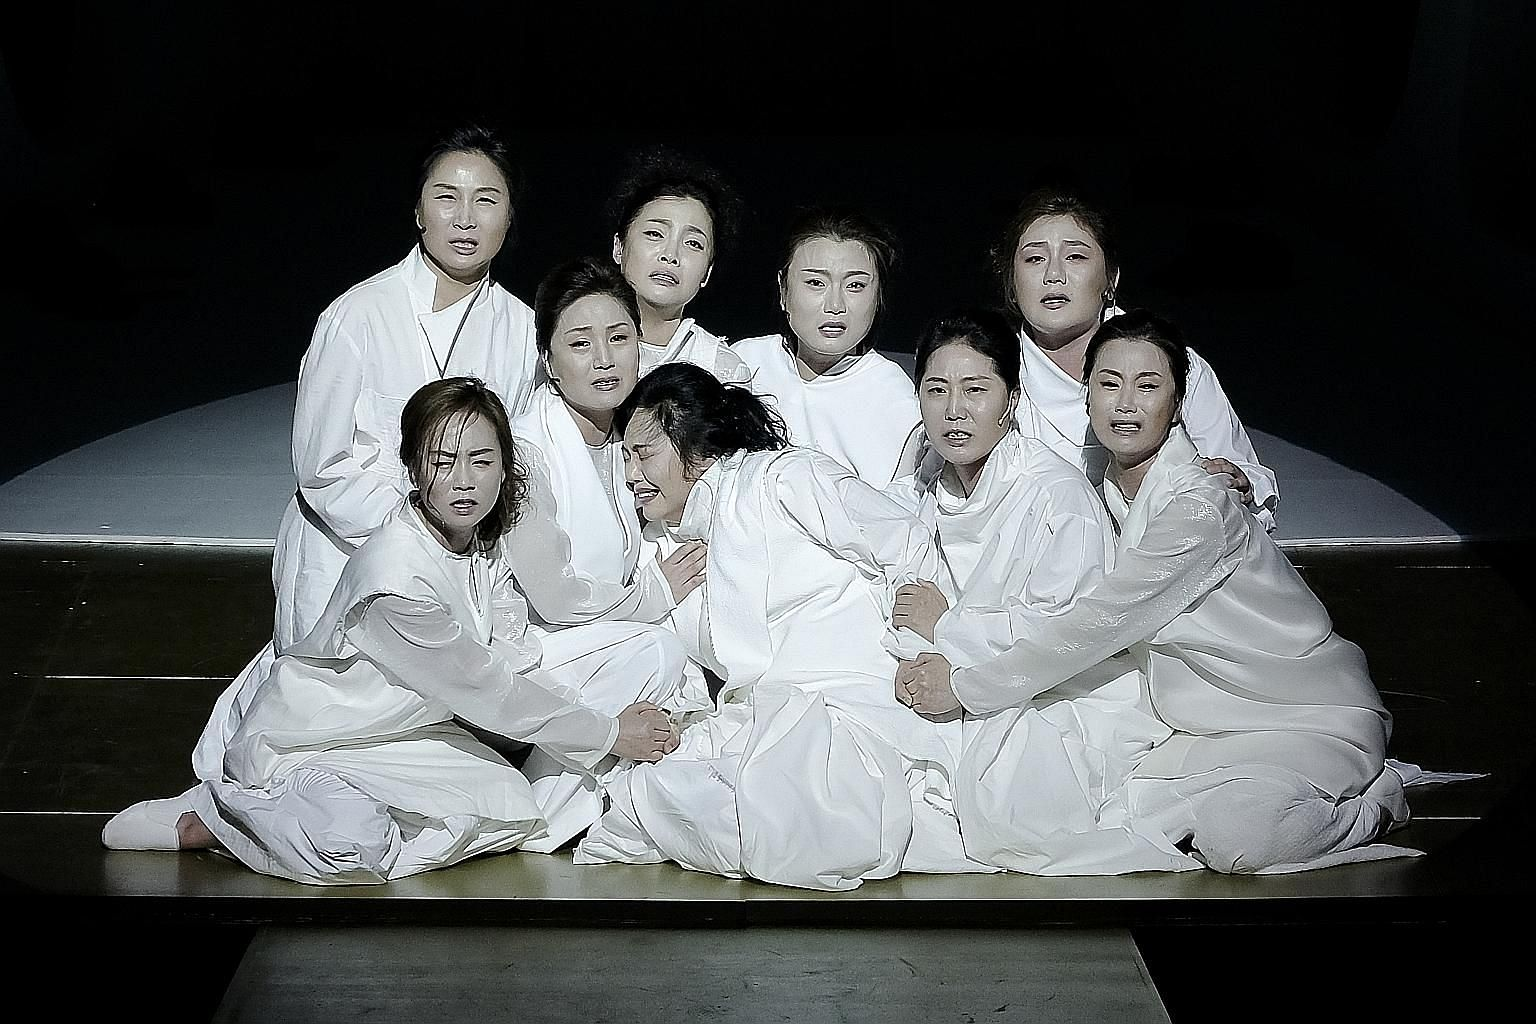 Trojan Women, based on Euripides' tragedy about the women who suffered after the fall of Troy, uses the Korean pansori tradition of musical storytelling.